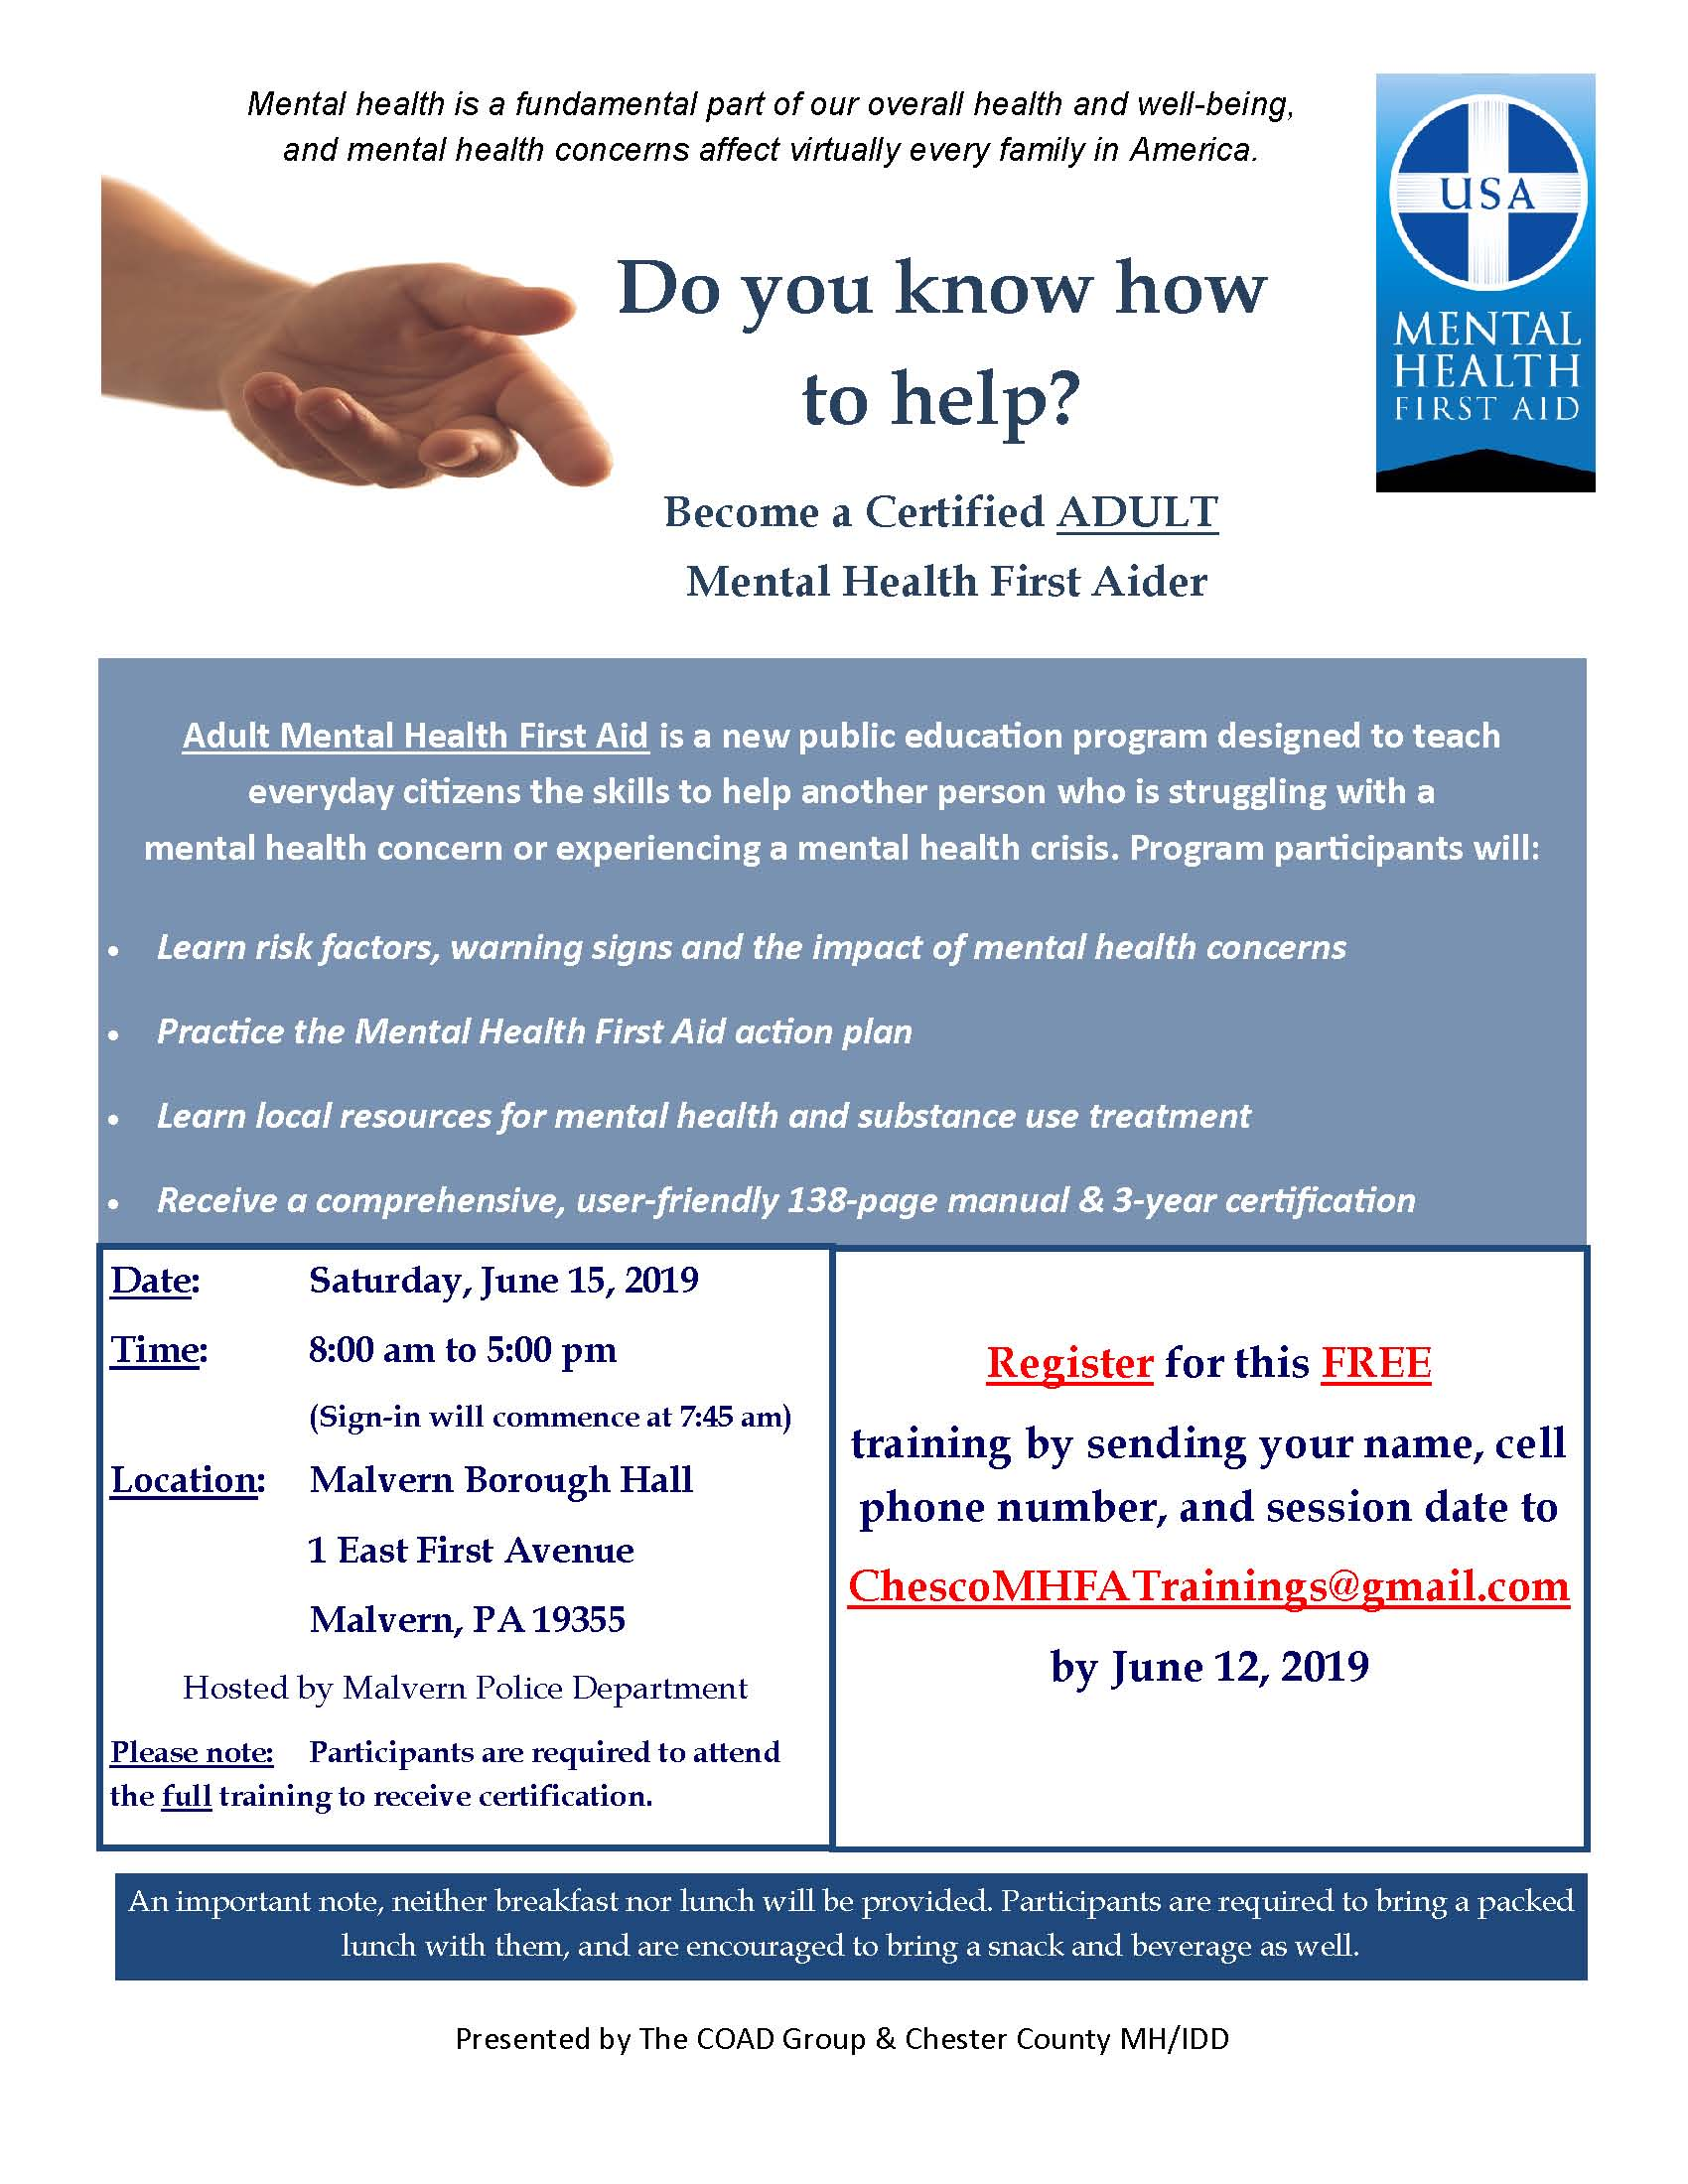 Adult MHFA Training Flyer - Malvern Borough Hall - June 2019